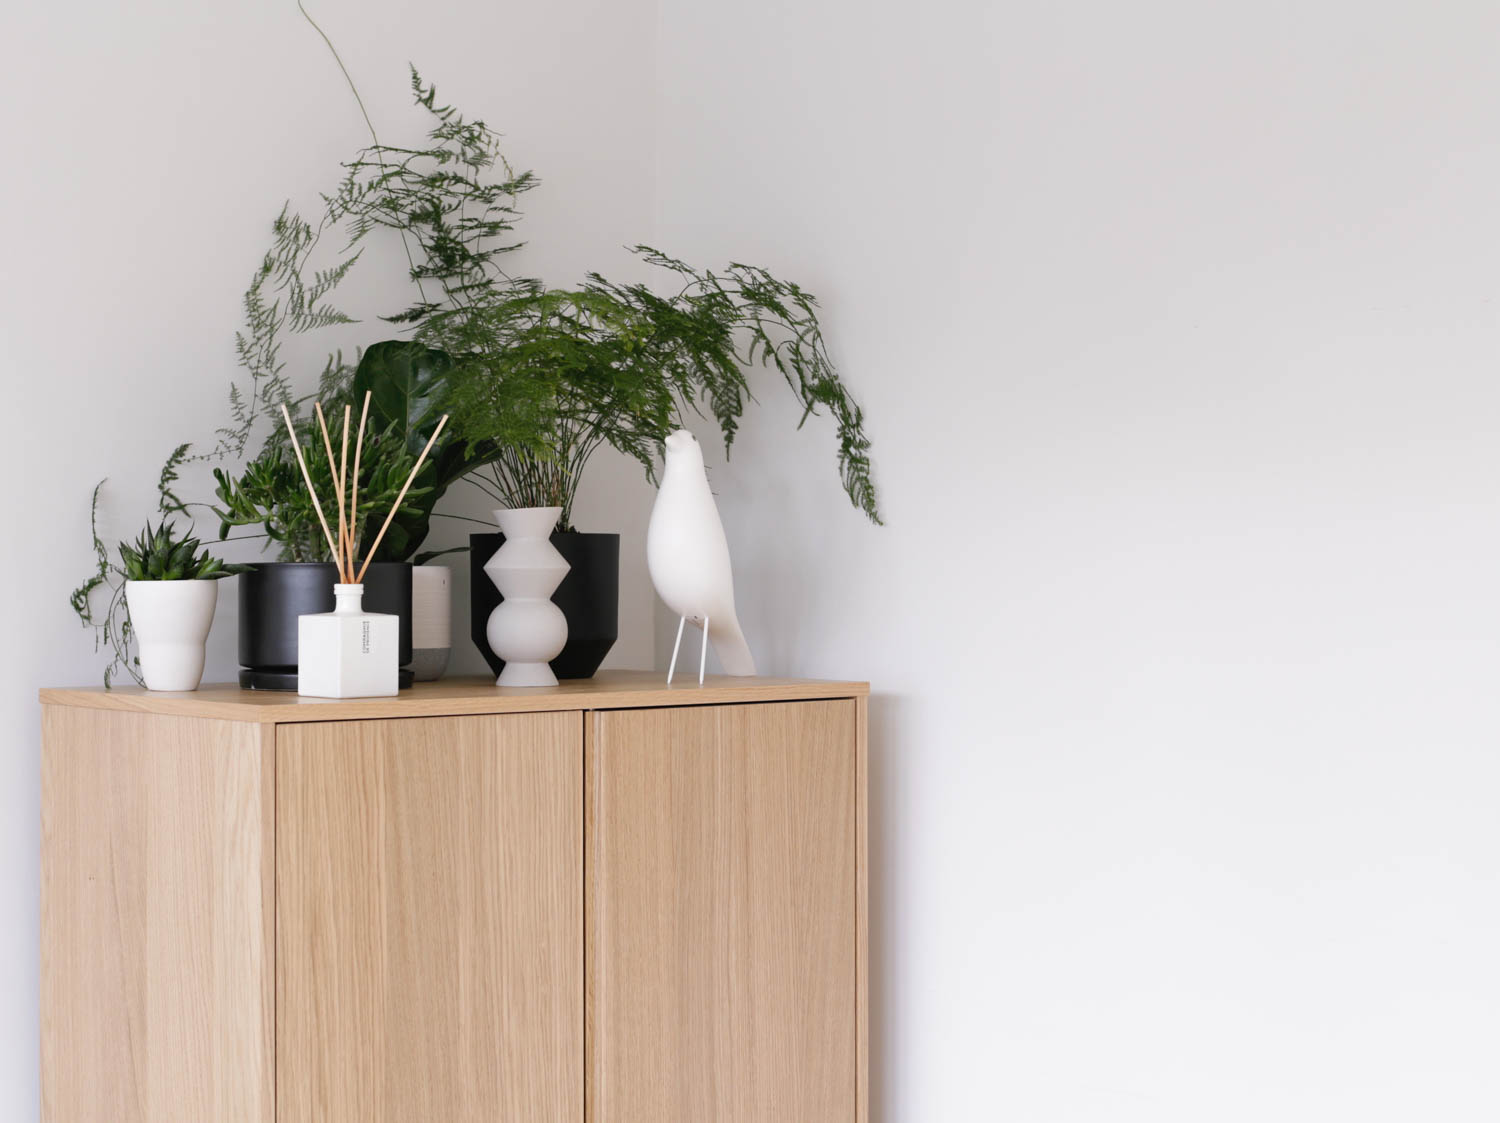 Plants in home office